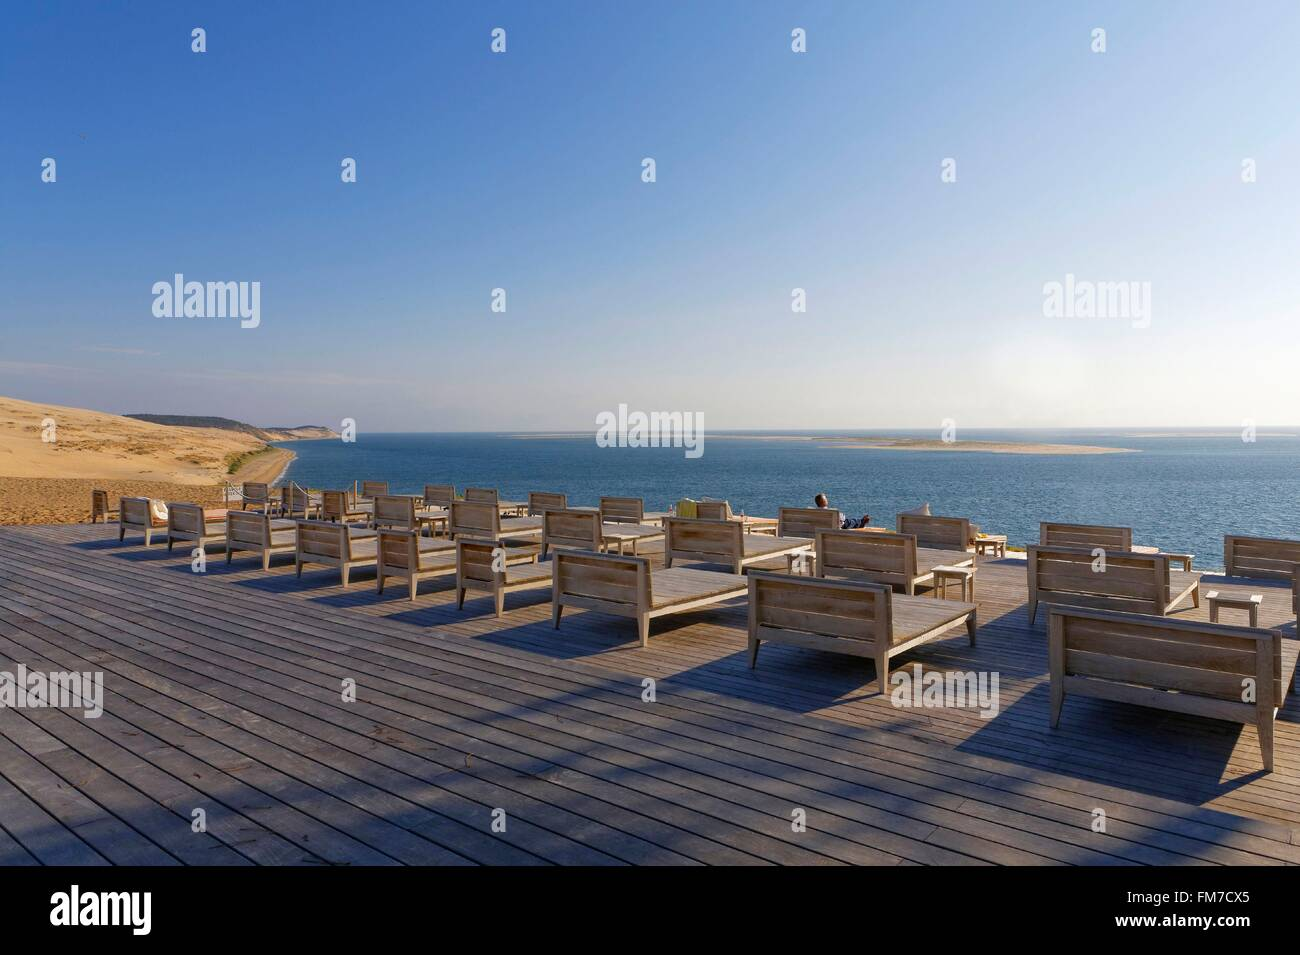 france gironde bassin d 39 arcachon pyla sur mer la corniche hotel stock photo 98508765 alamy. Black Bedroom Furniture Sets. Home Design Ideas